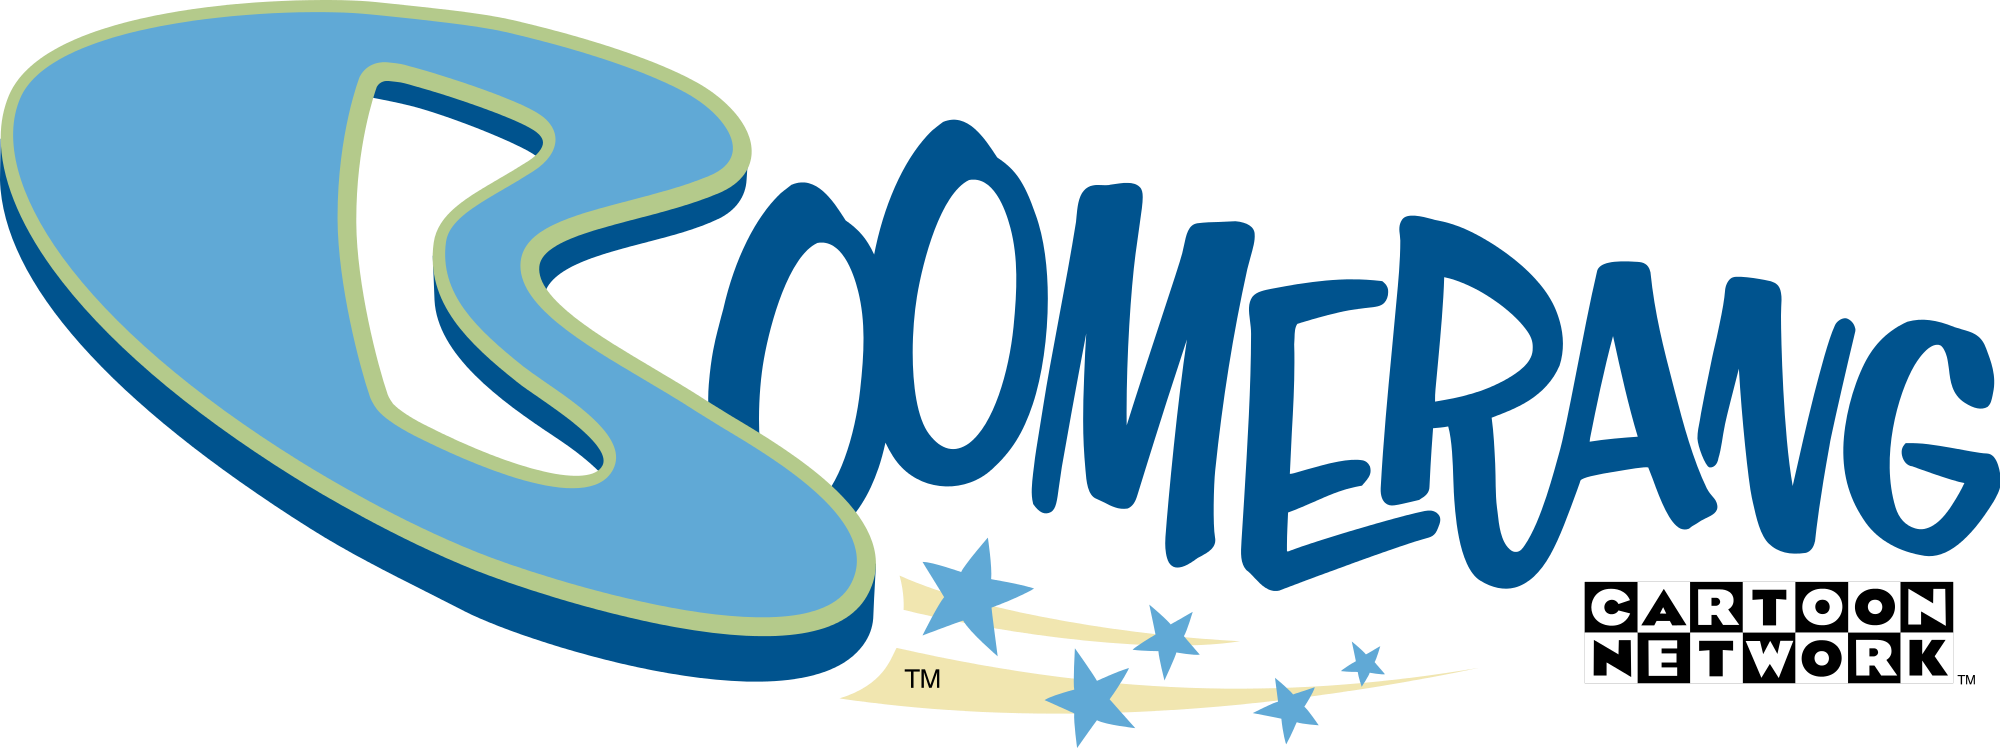 Boomerang From Cartoon Network Logos 2000 2015 Fonts In Use